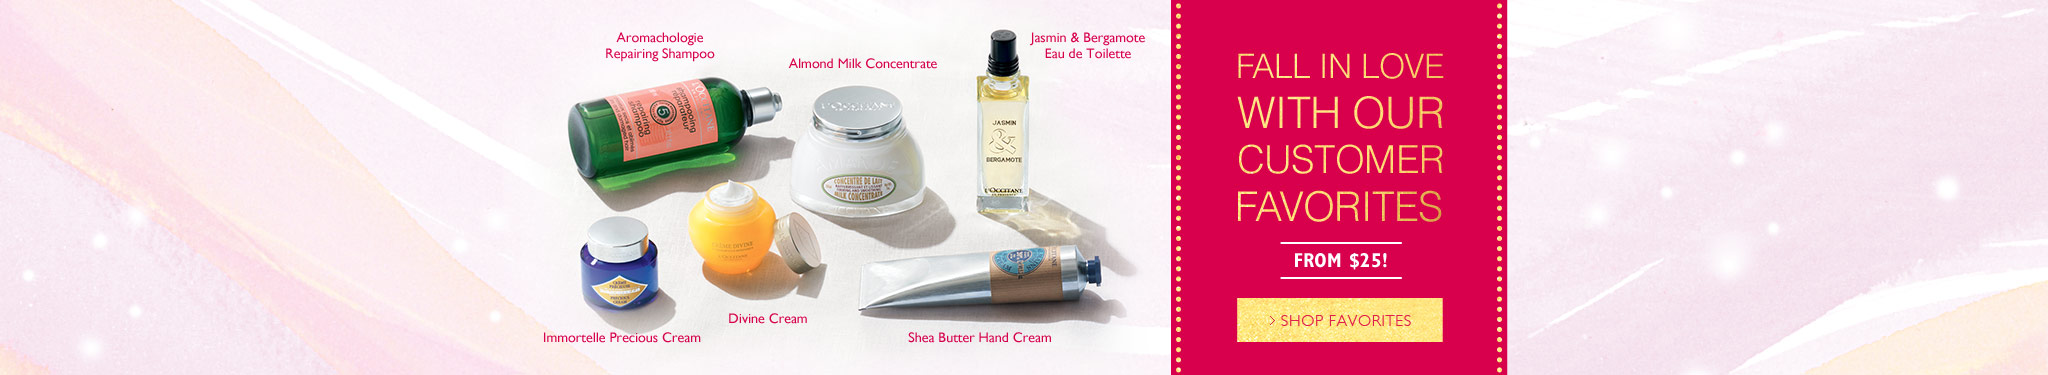 L'OCCITANE customer favorites